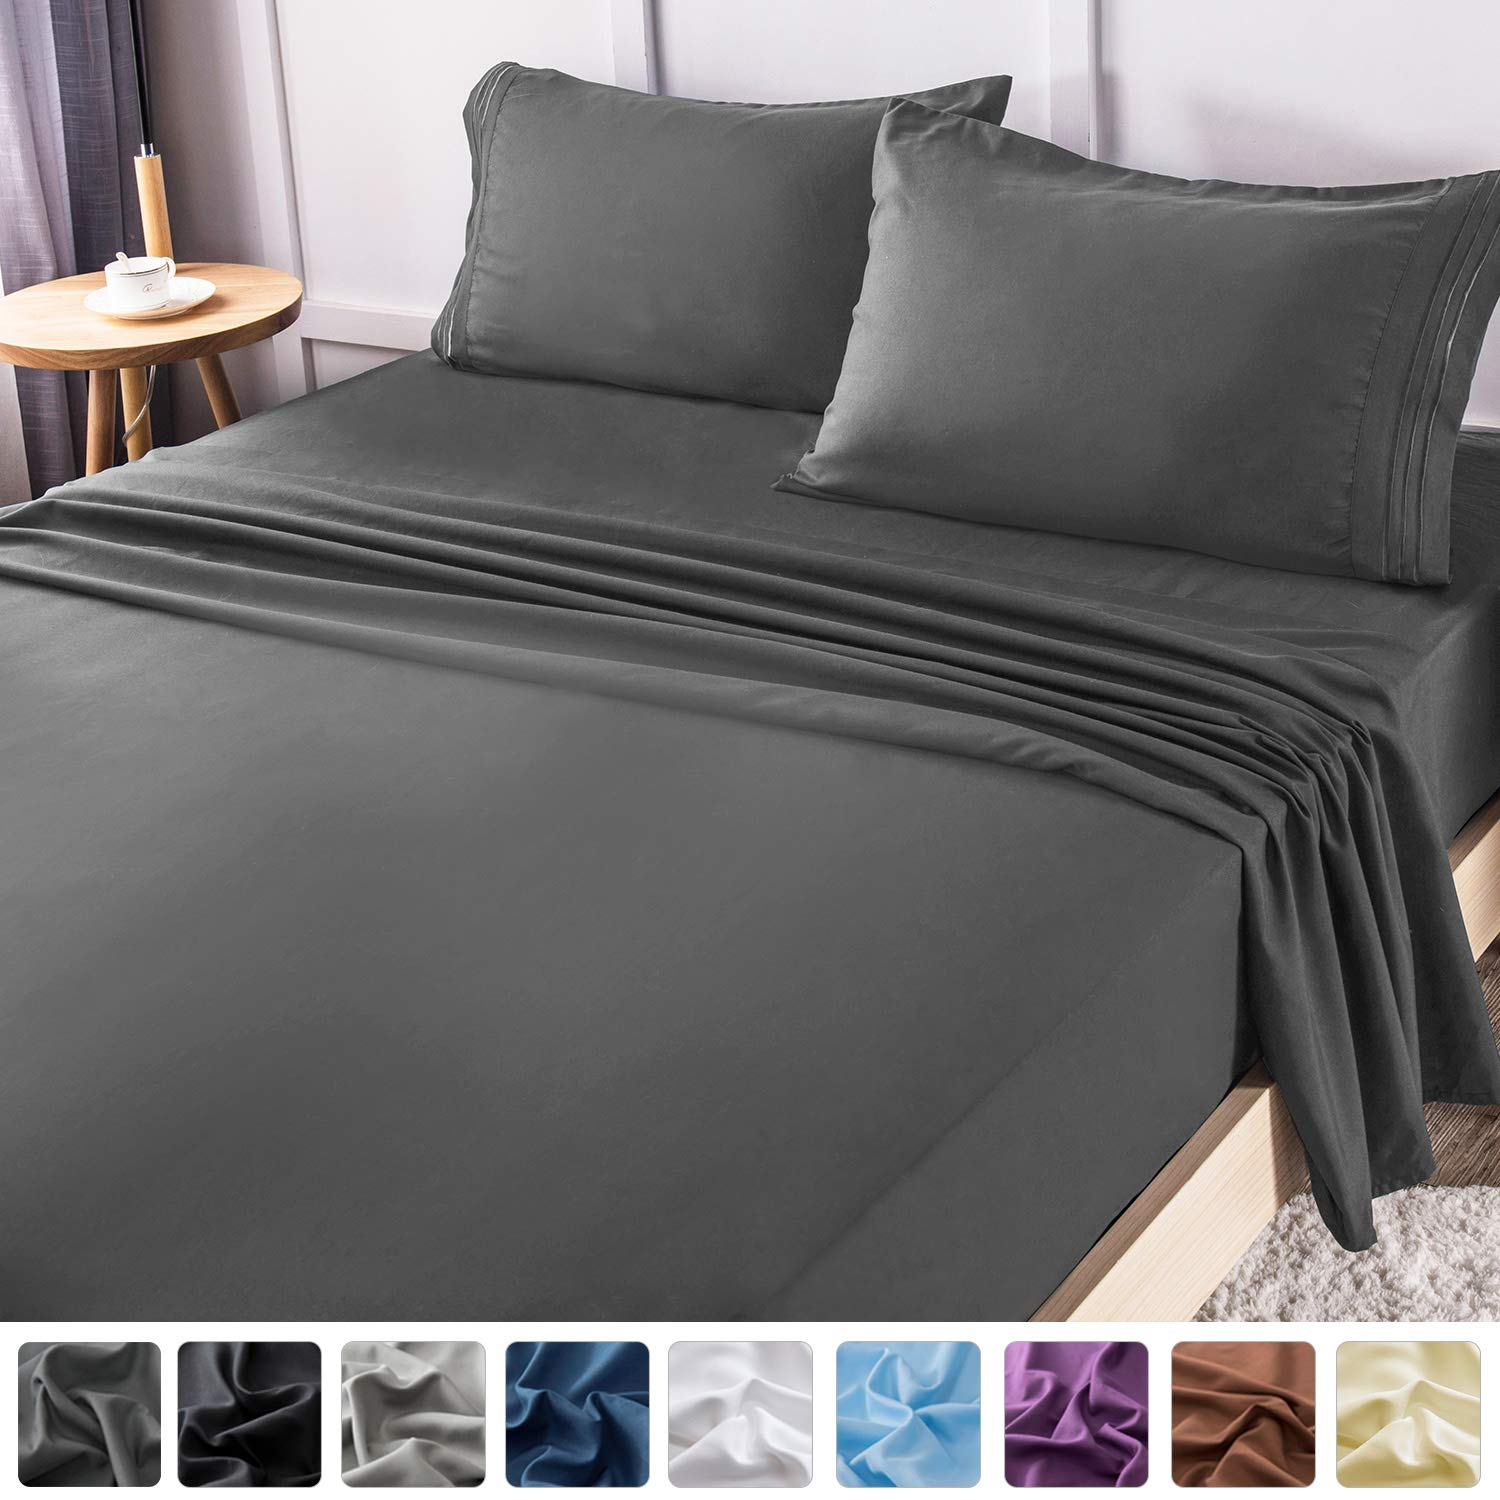 LIANLAM Queen Bed Sheets Set - Super Soft Brushed Microfiber 1800 Thread Count - Breathable Luxury Egyptian Sheets 16-Inch Deep Pocket - Wrinkle and Hypoallergenic-4 Piece(Queen, Dark Grey) by LIANLAM